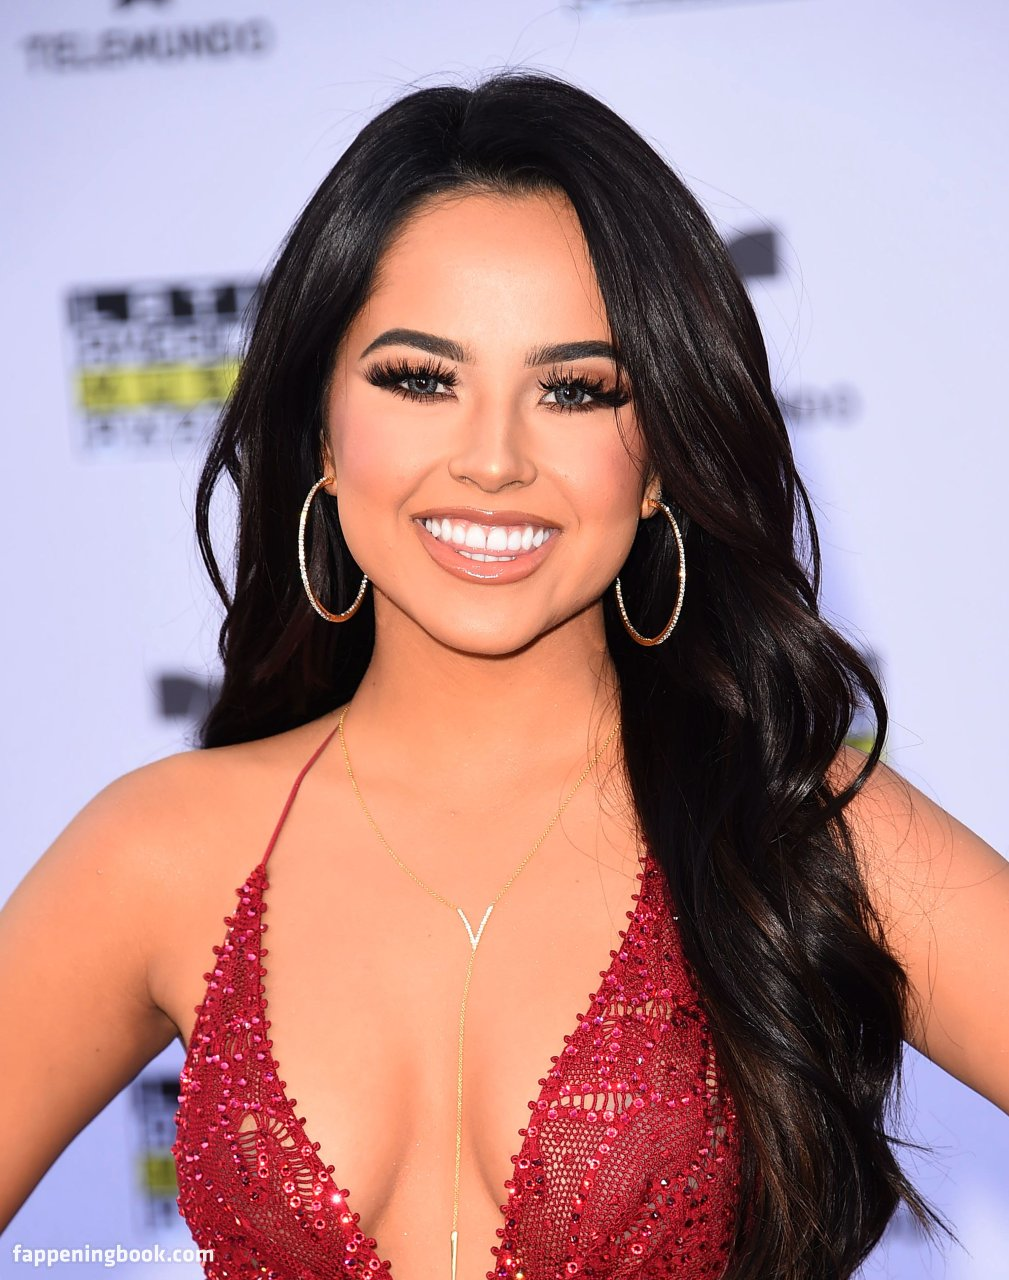 Pin by Quirossandoval on Becky G   Becky g, Becky g style